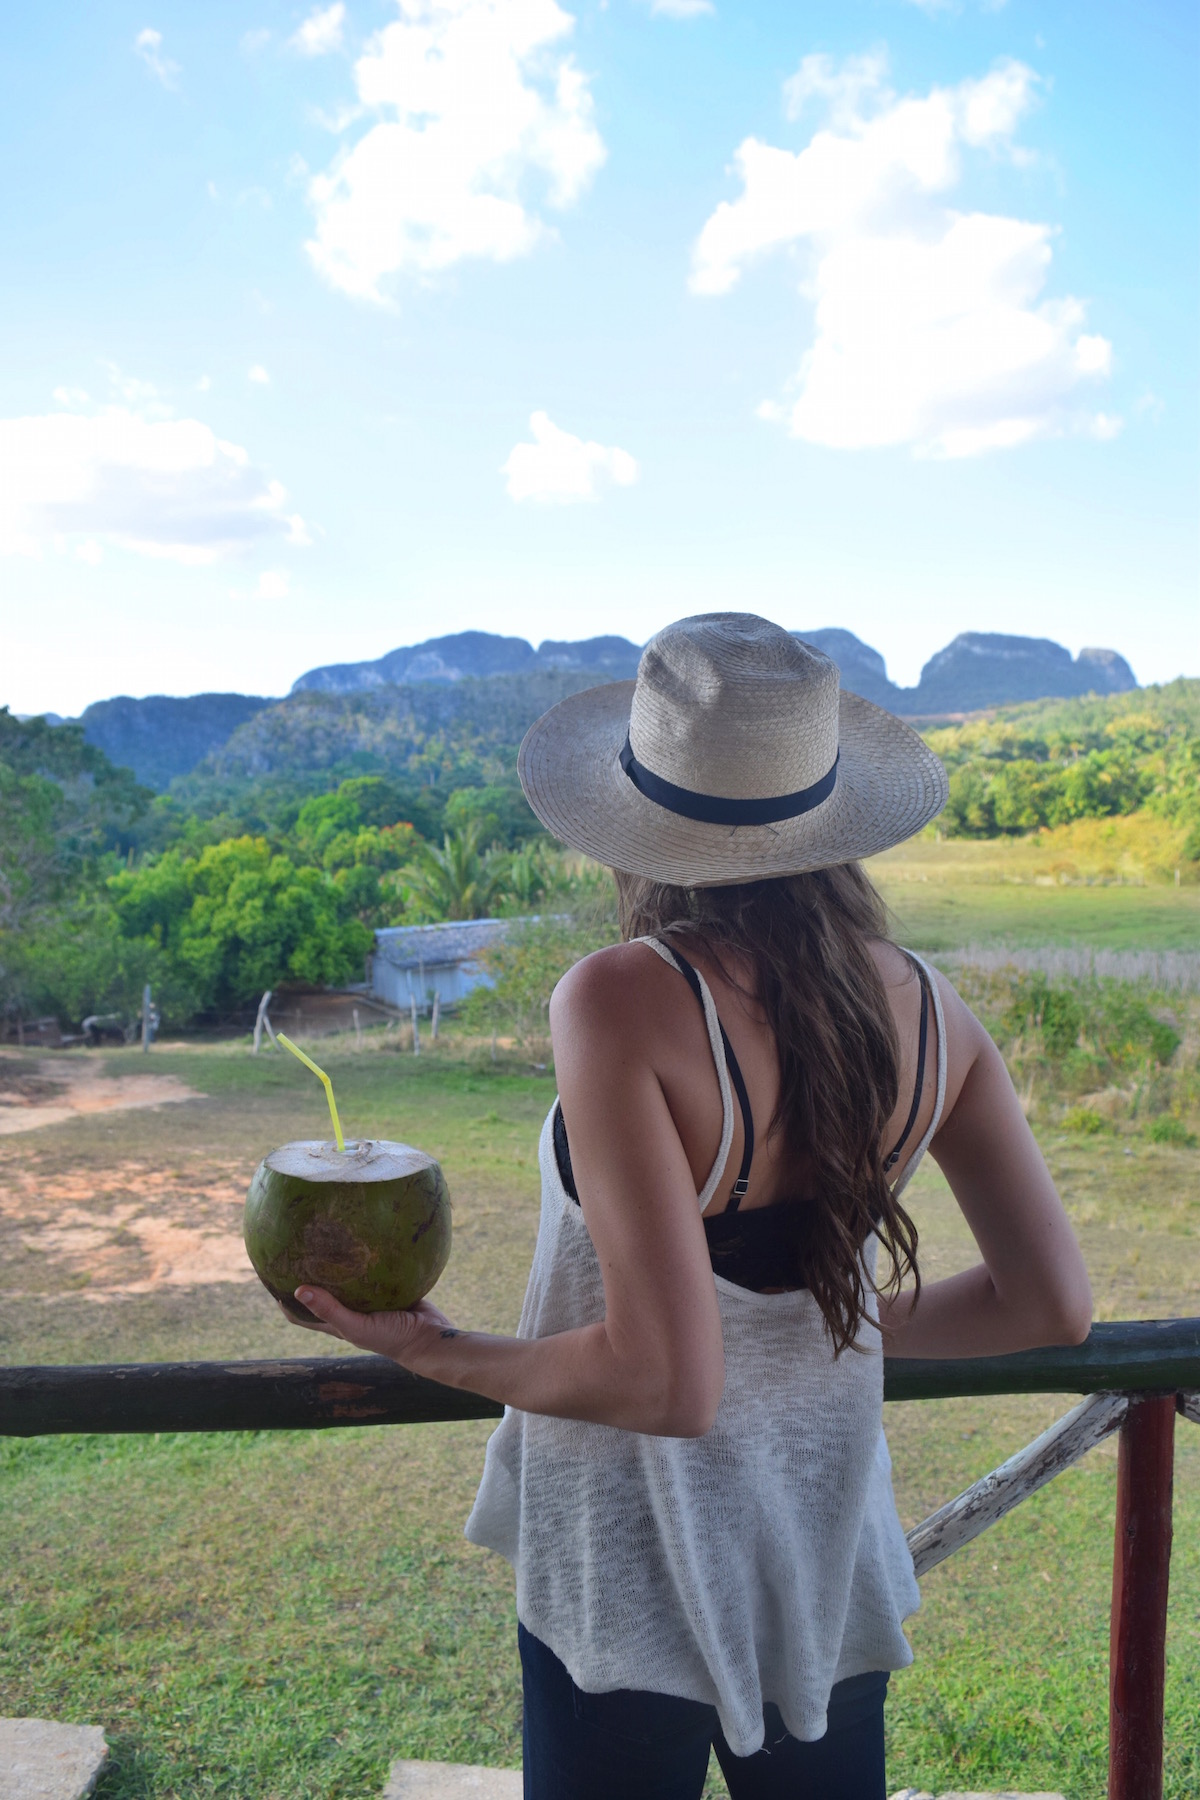 a lookout cafe while in vinales - enjoying some fresh coconut juice is the best way to take in the view. -  Tessa Juliette | http://travelwheretonext.com/cuba